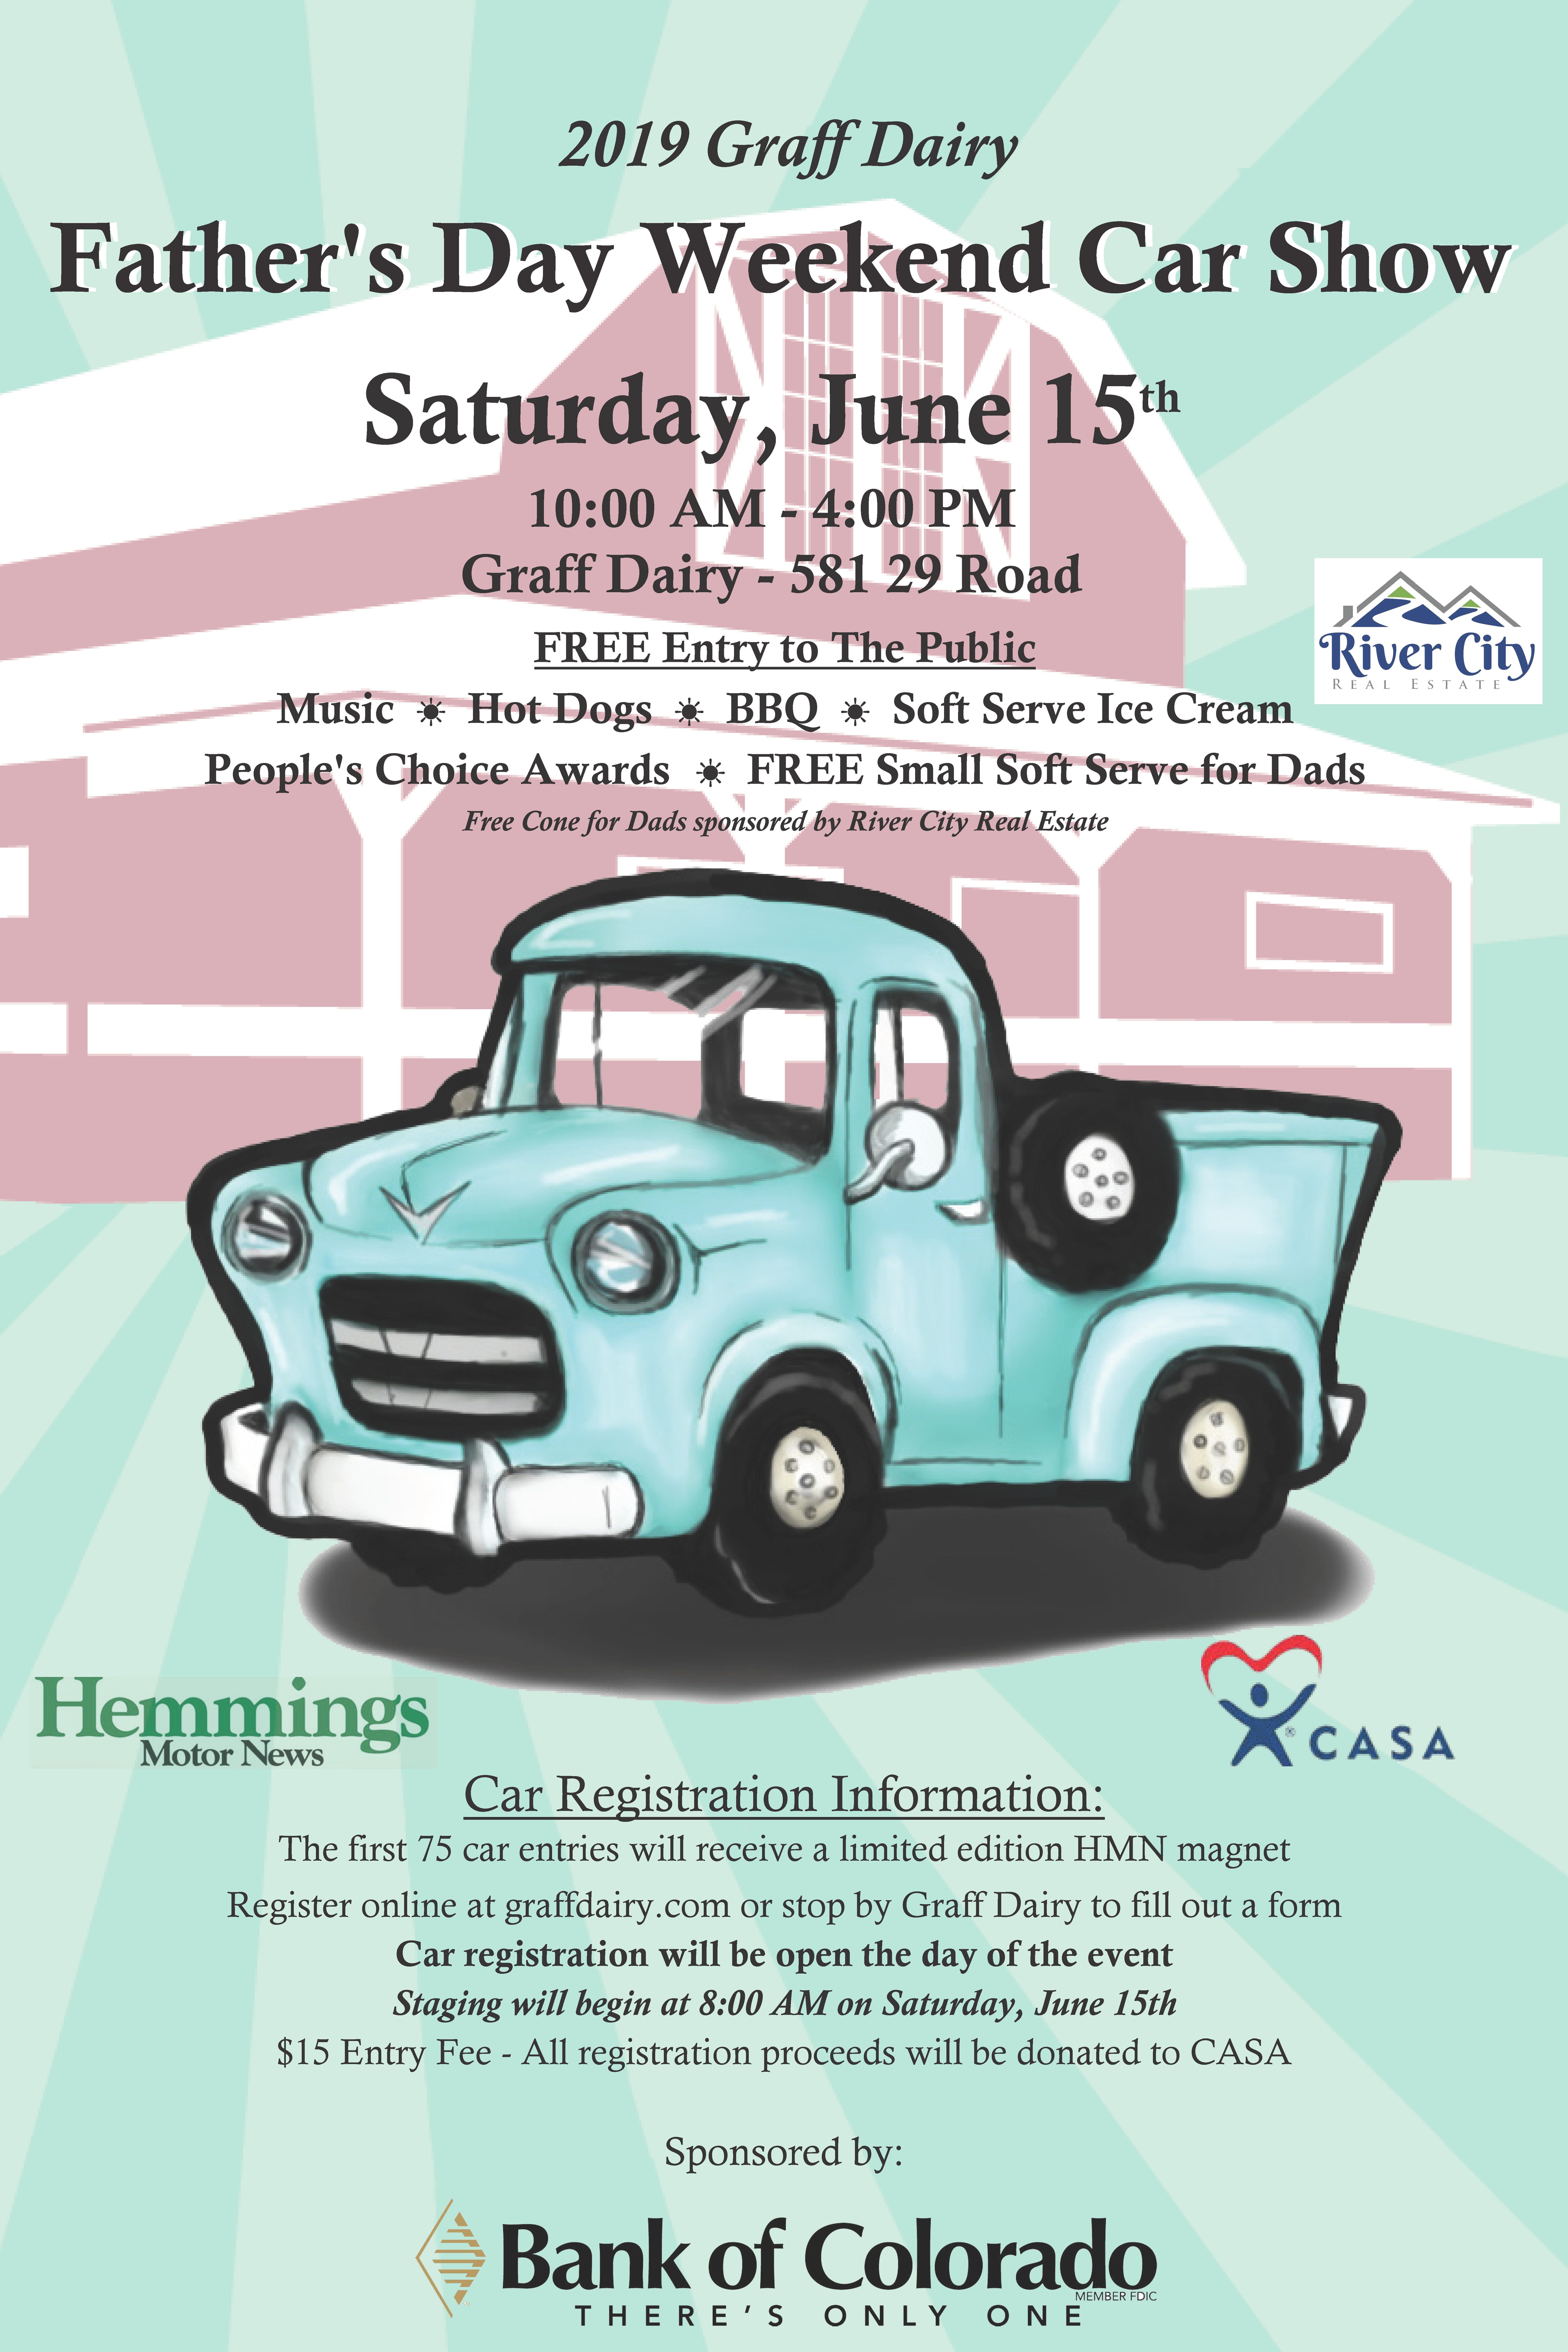 Father's Day Weekend Car Show at Graff Dairy